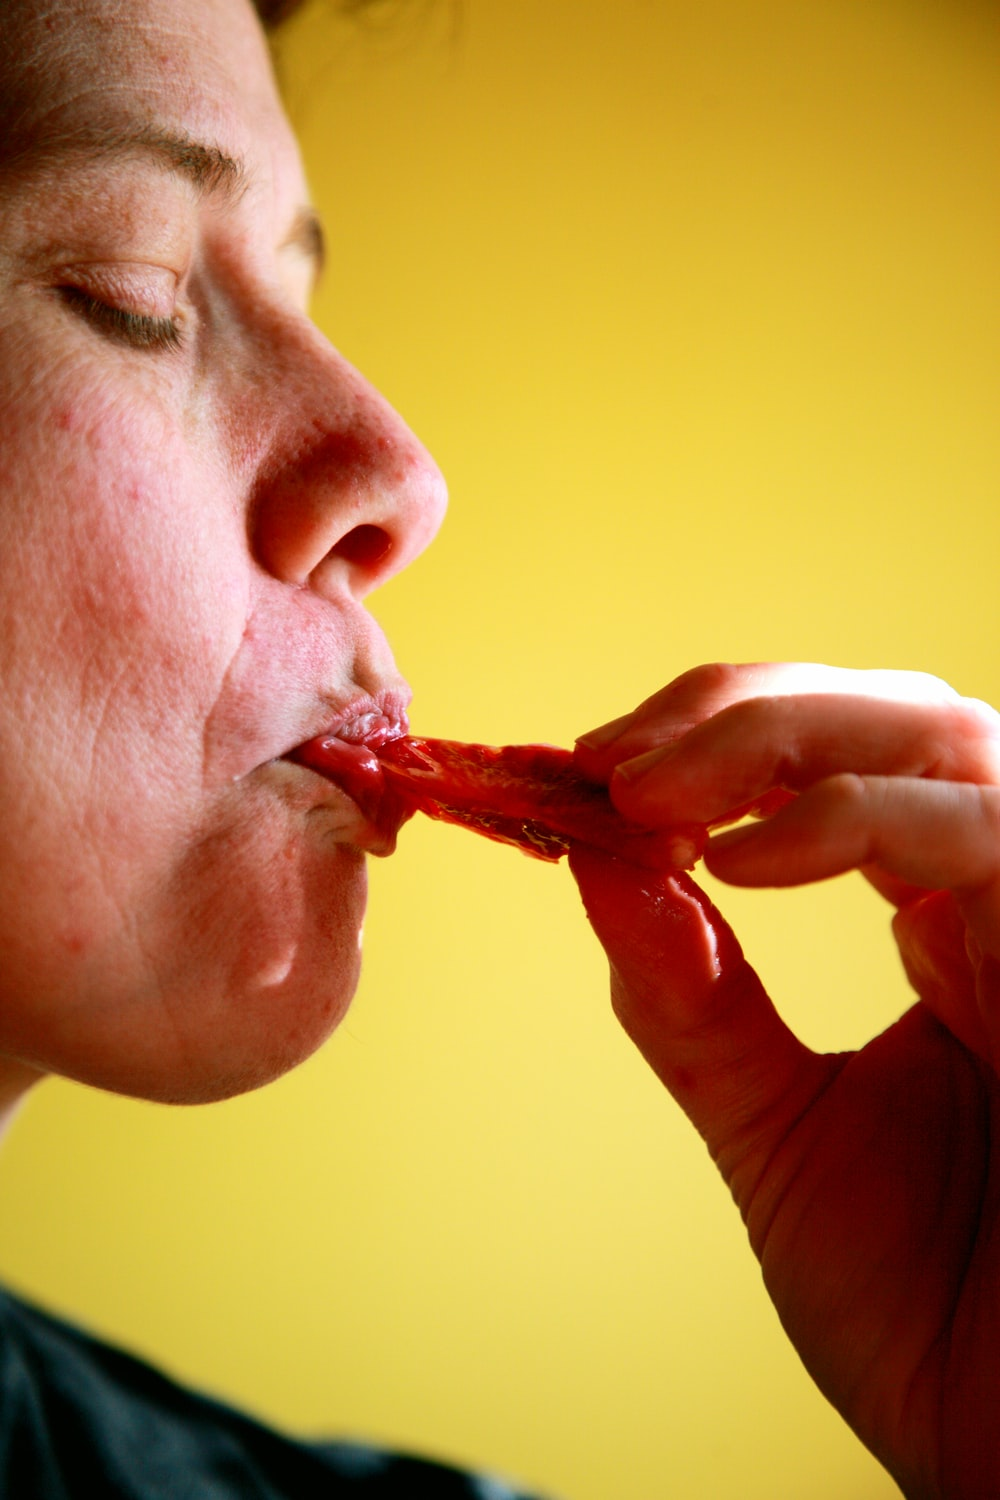 person eating red food in yellow room